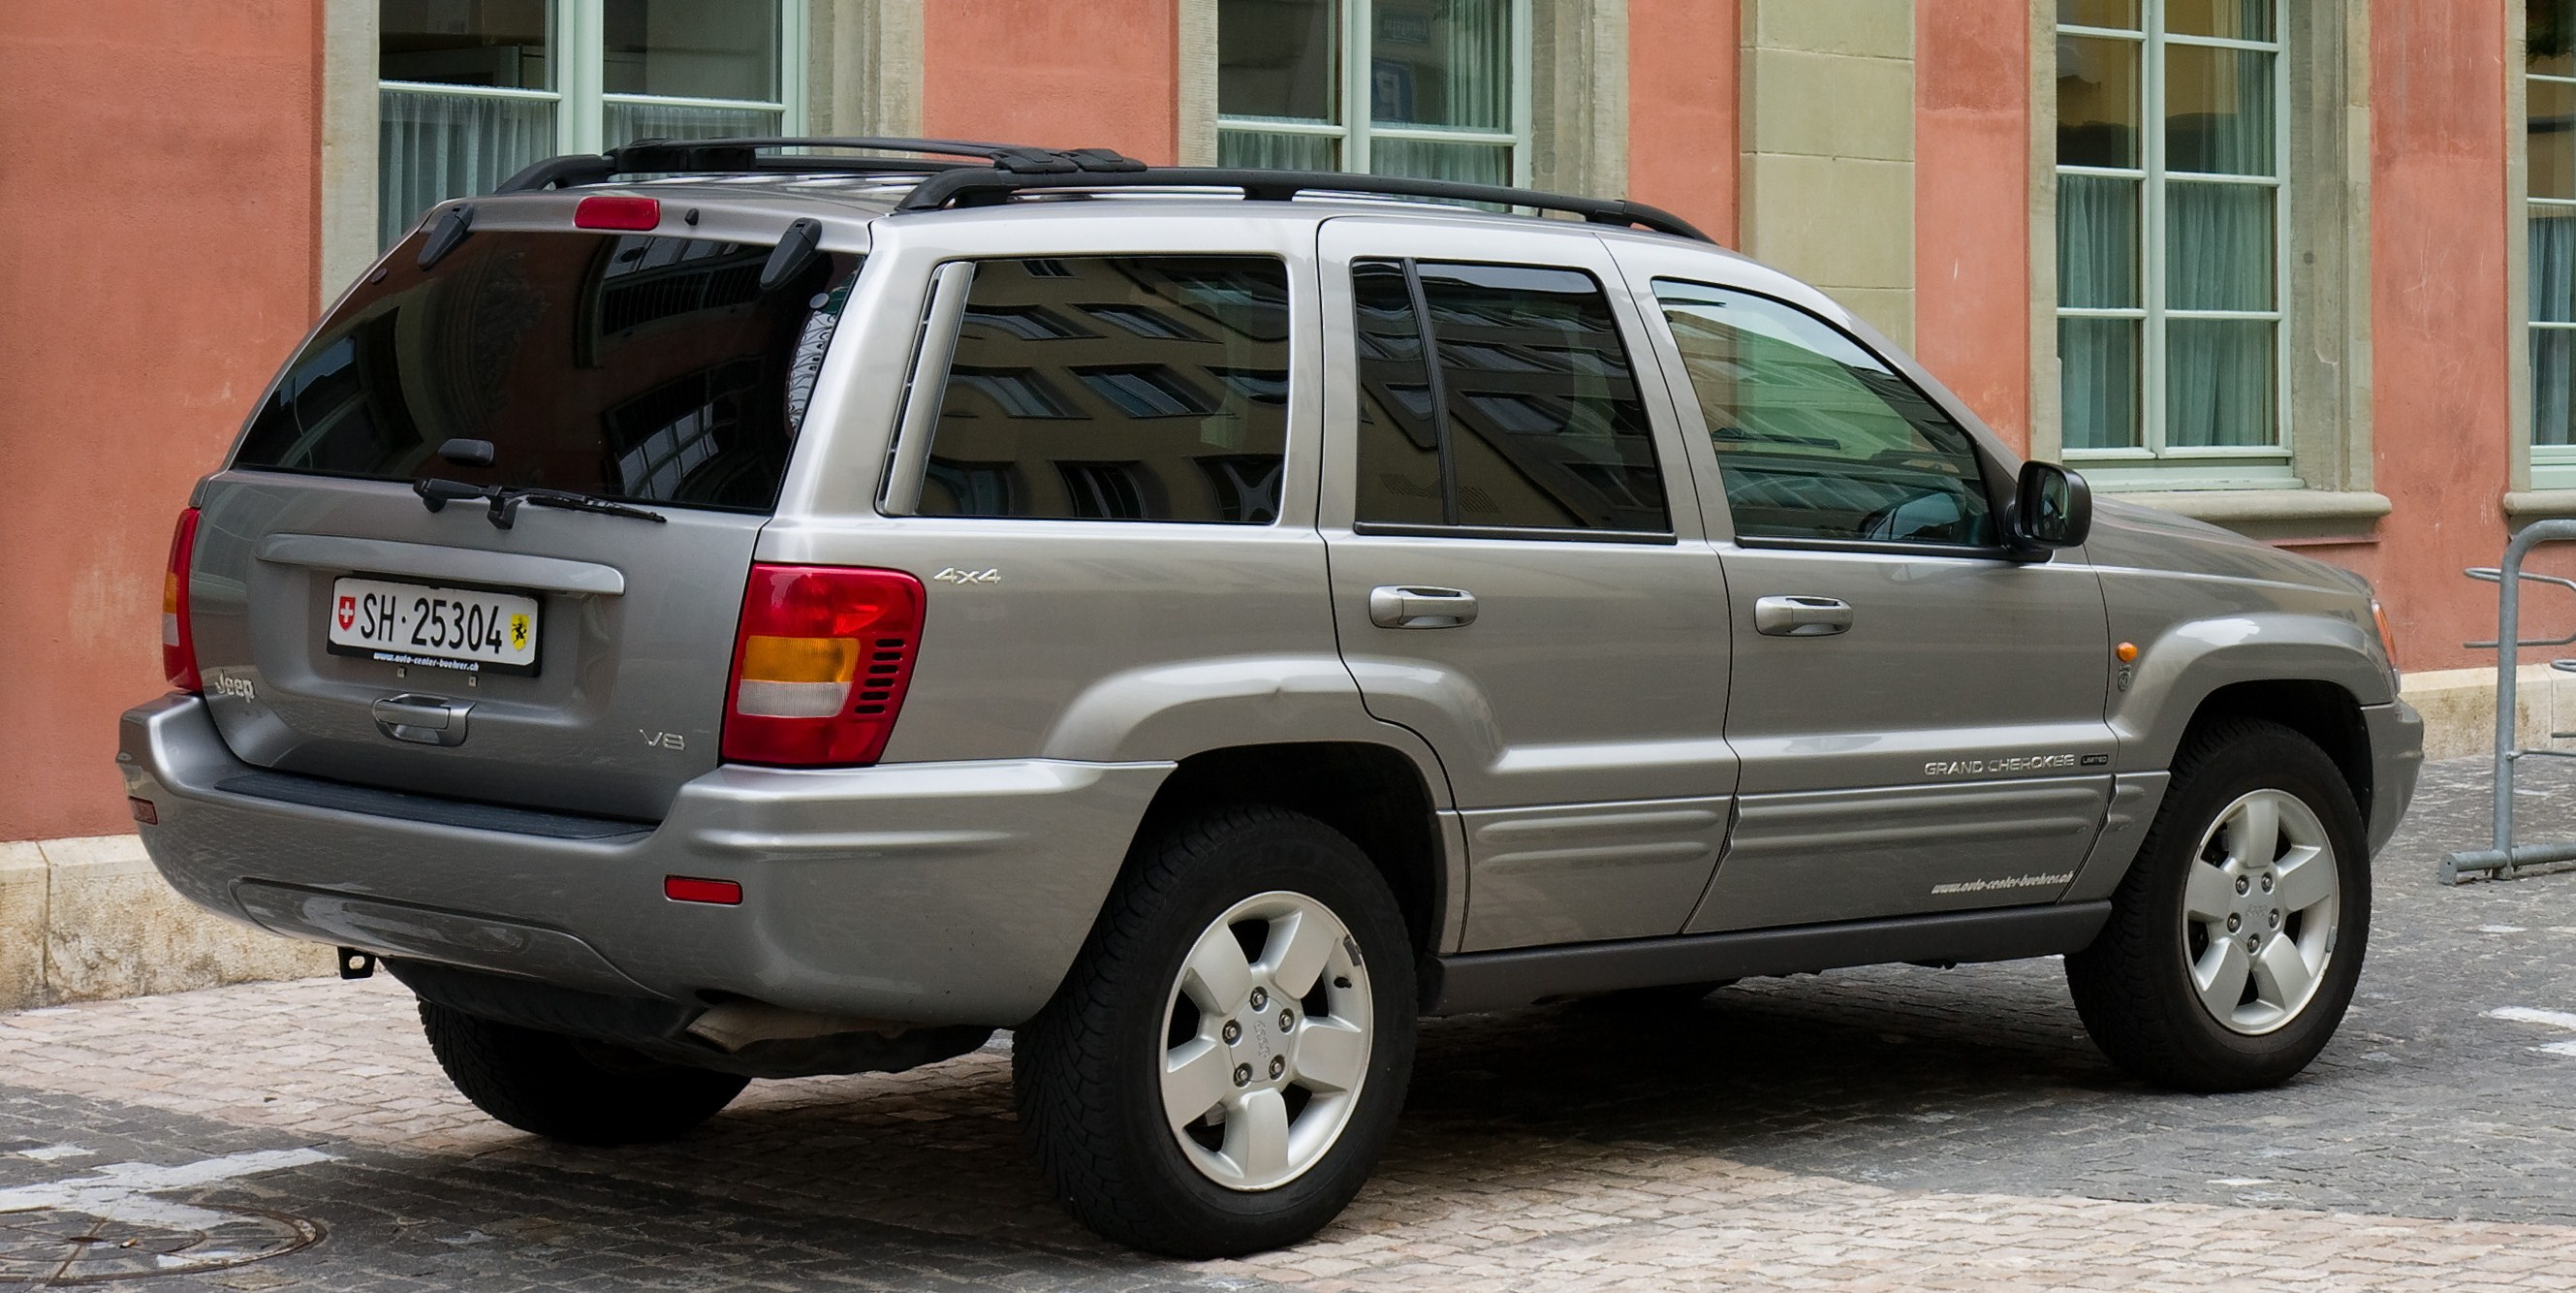 file:jeep grand cherokee rear - wikimedia commons